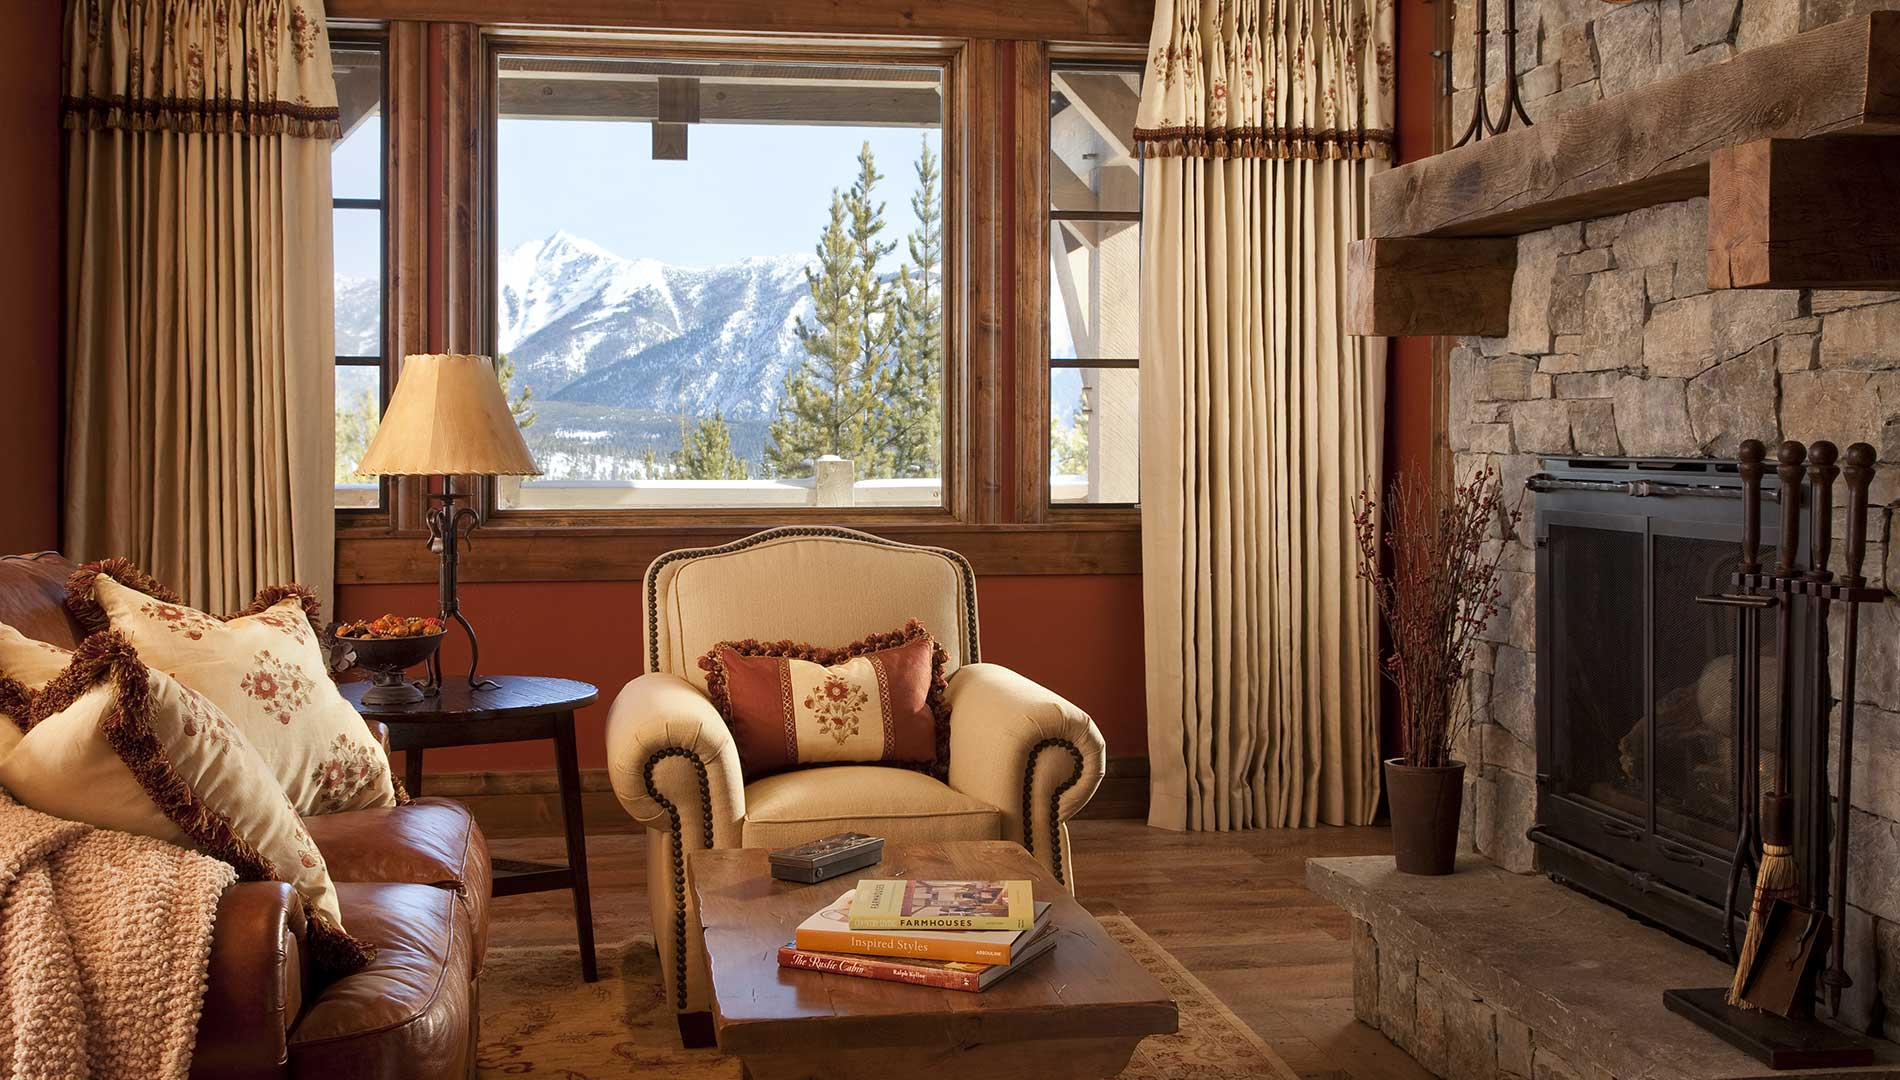 living-room-spanish-peaks-elizabeth-robb-interiors-1900x1080